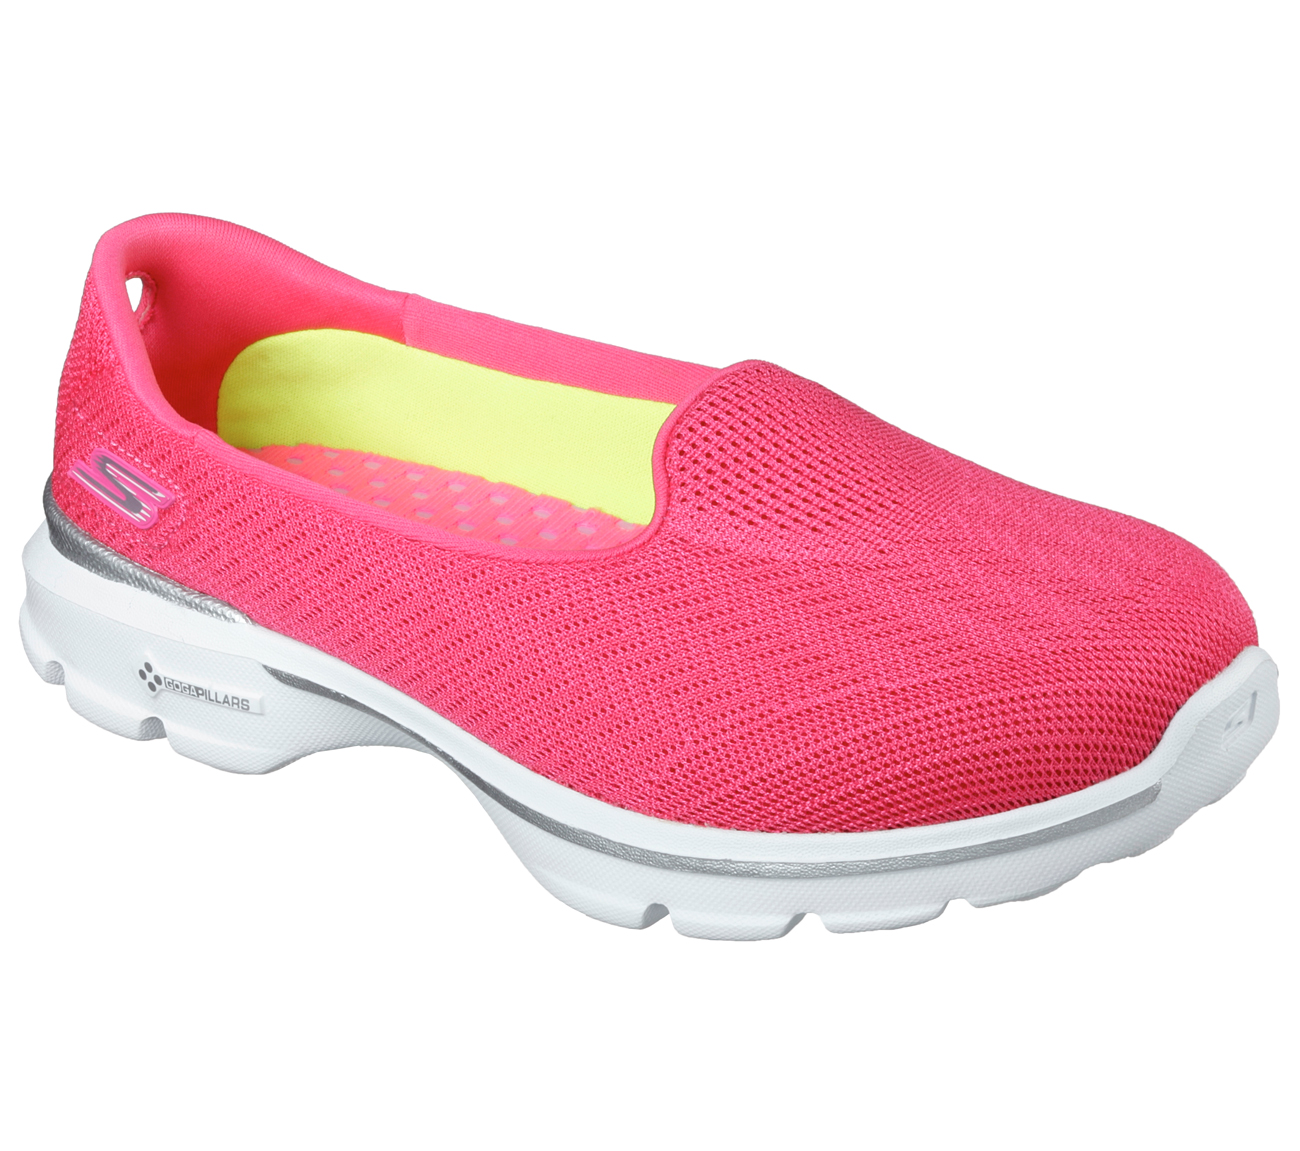 8a98b01feaaf SKECHERS announces most awaited sale 40% off